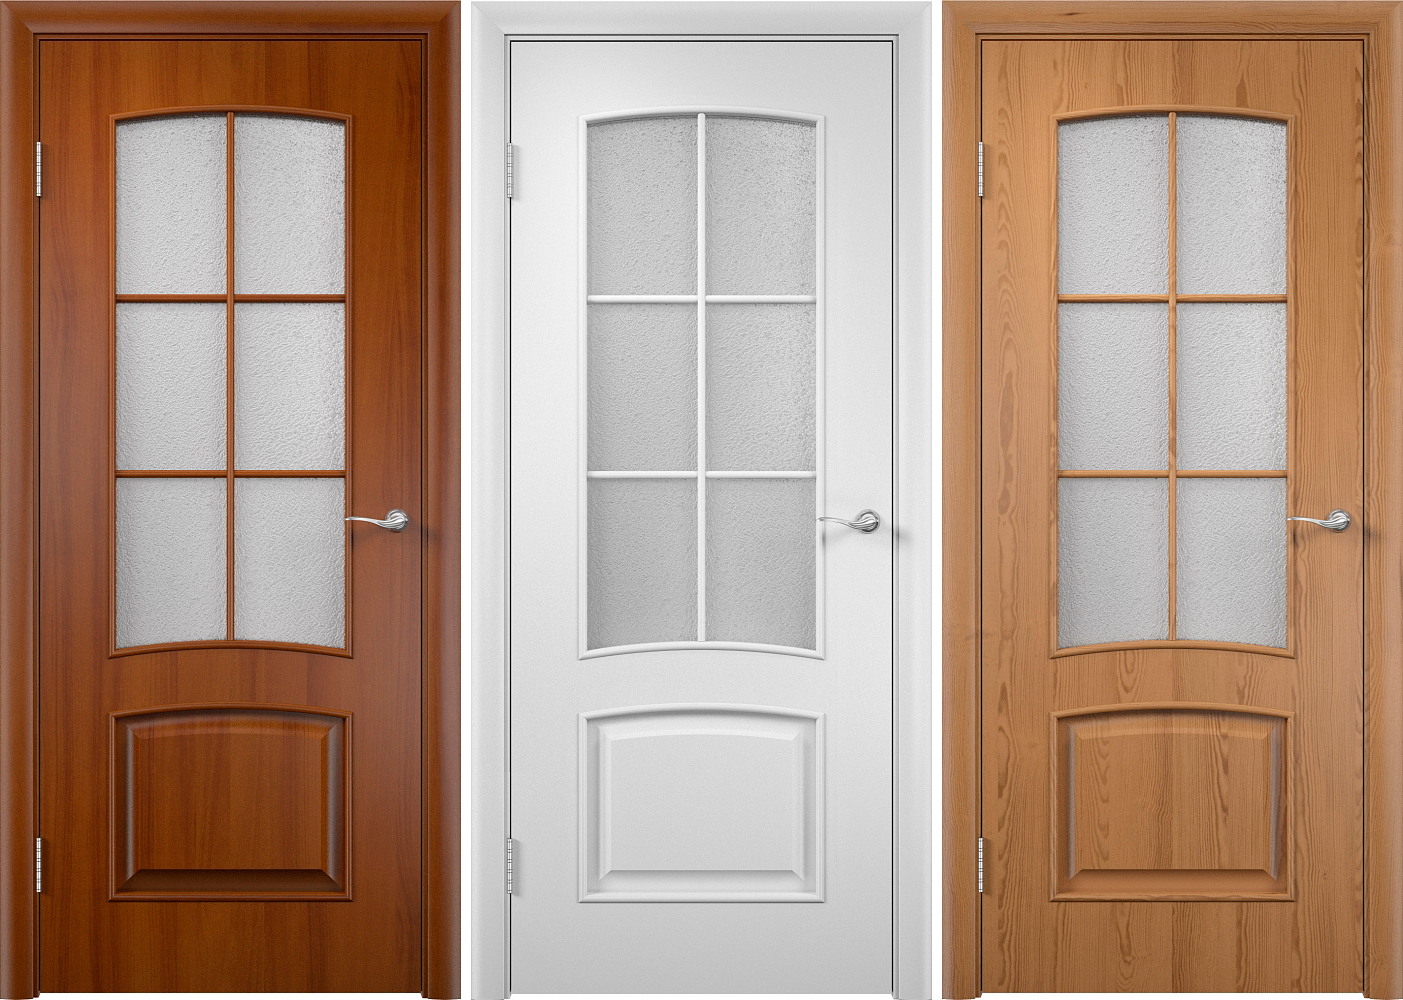 Lamination – decorative finishing of interior doors